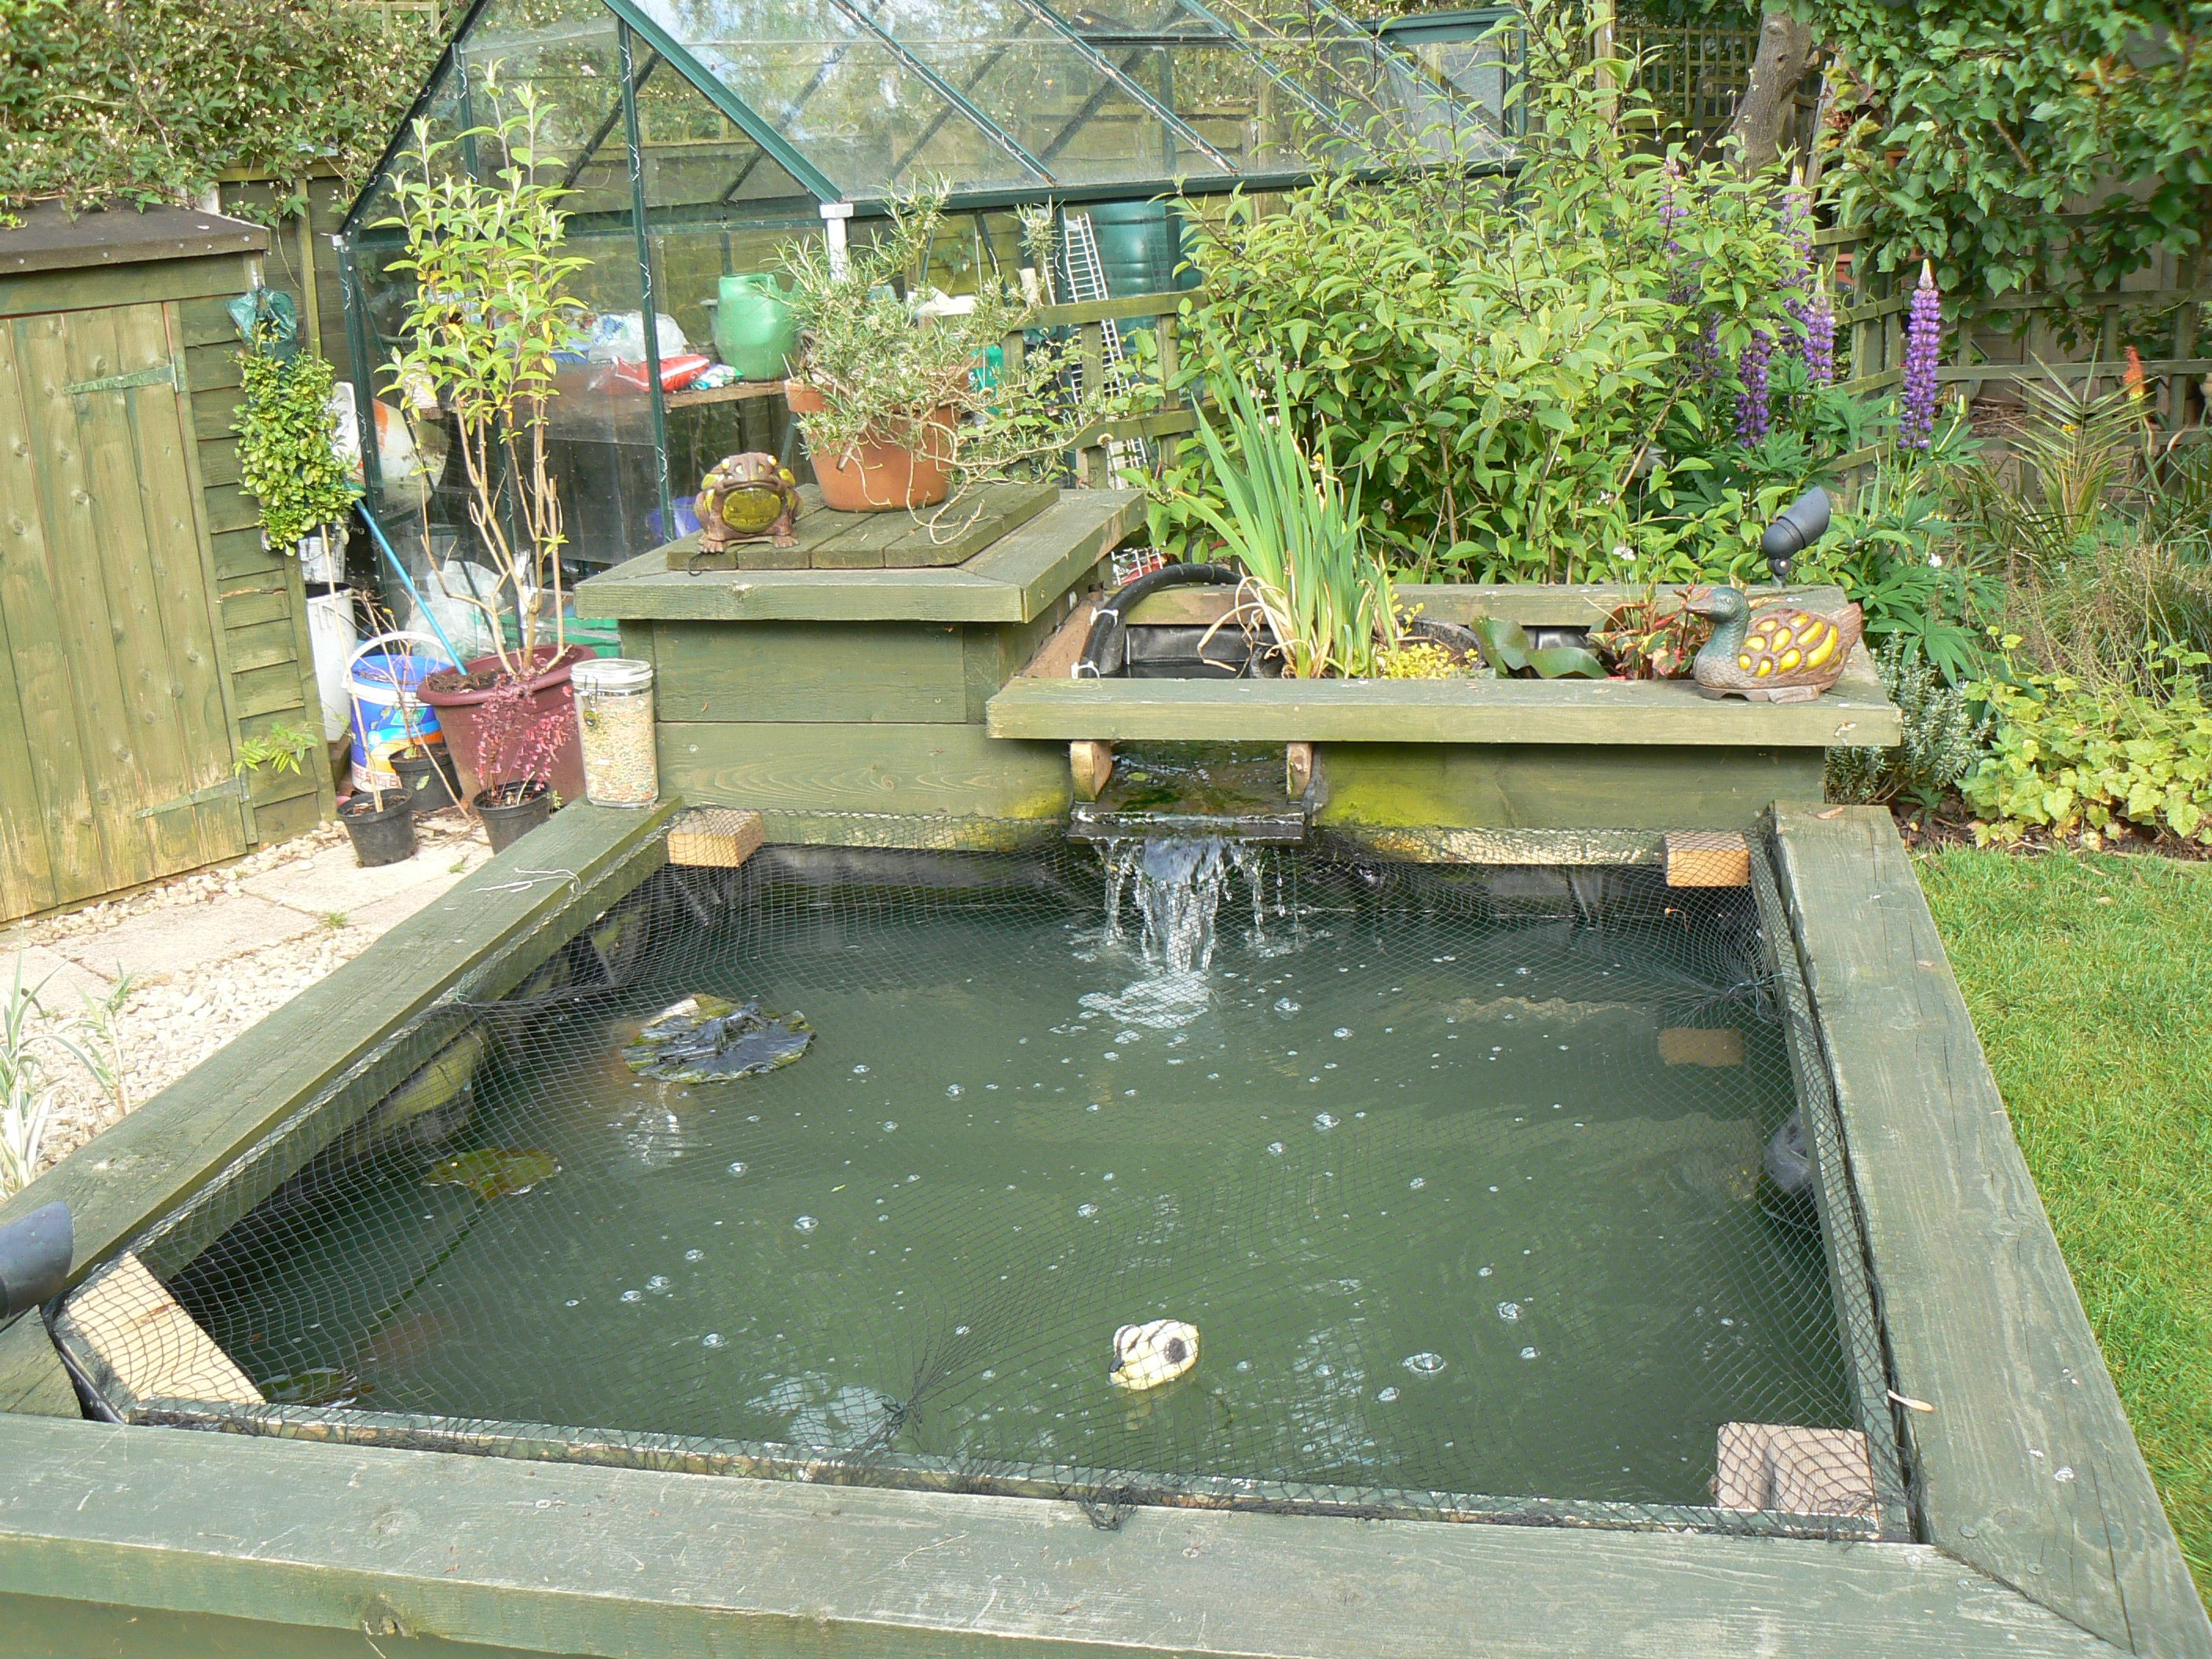 Johnson close 2009 raised sleeper pond with water cascade for Raised koi pond ideas